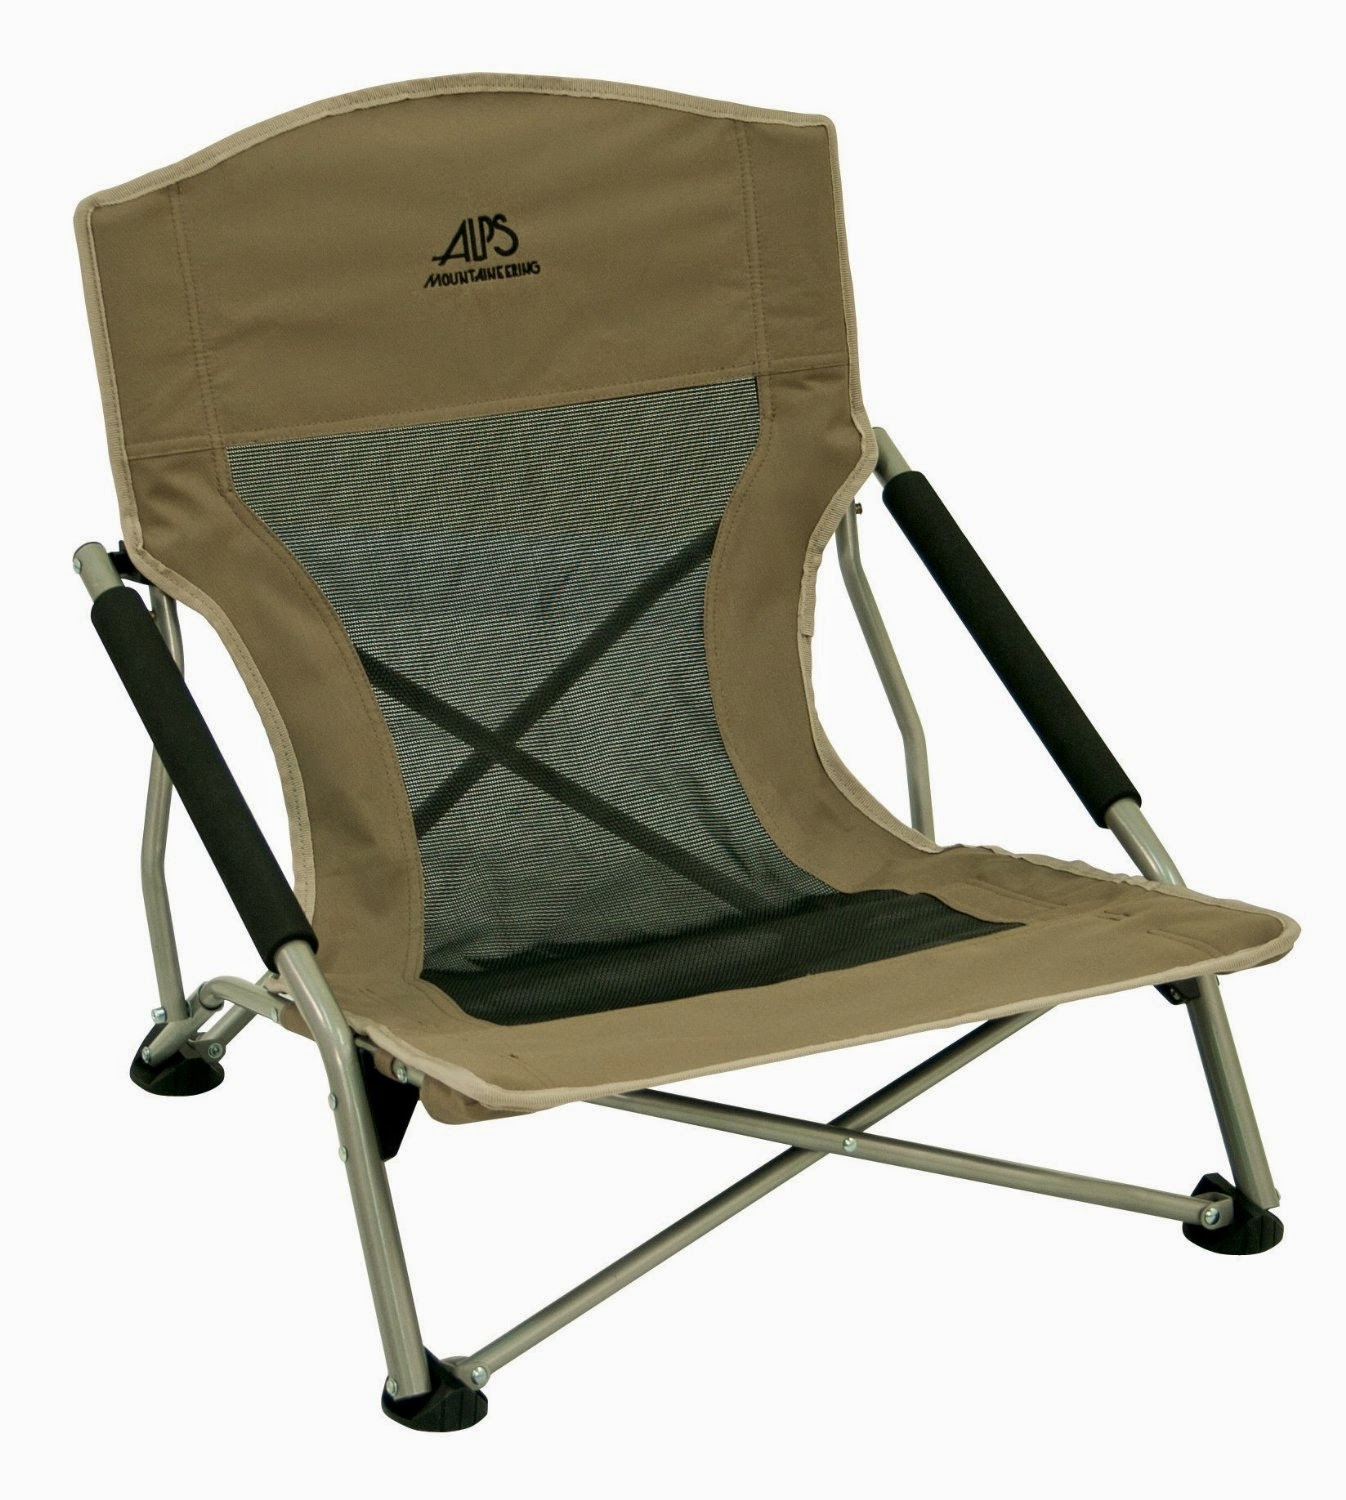 Cheap Folding Beach Chairs Cheap Beach Chairs March 2014